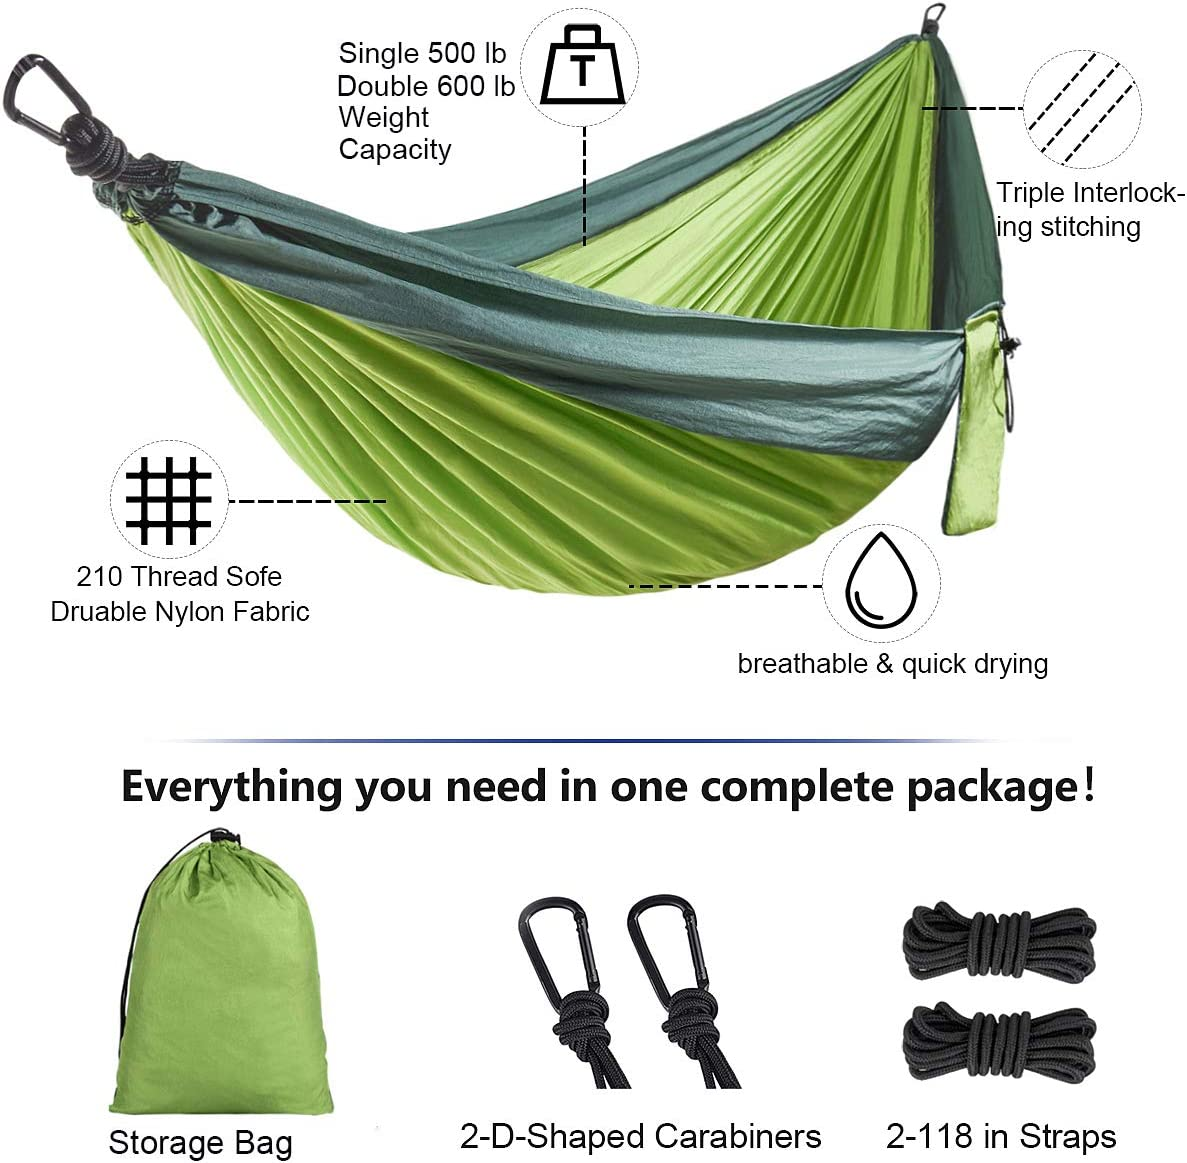 Lifeleads Camping Hammock-Nylon Double and Single Portable Parachute Lightweight for Outdoor or Indoor Backpacking Travel Hiking